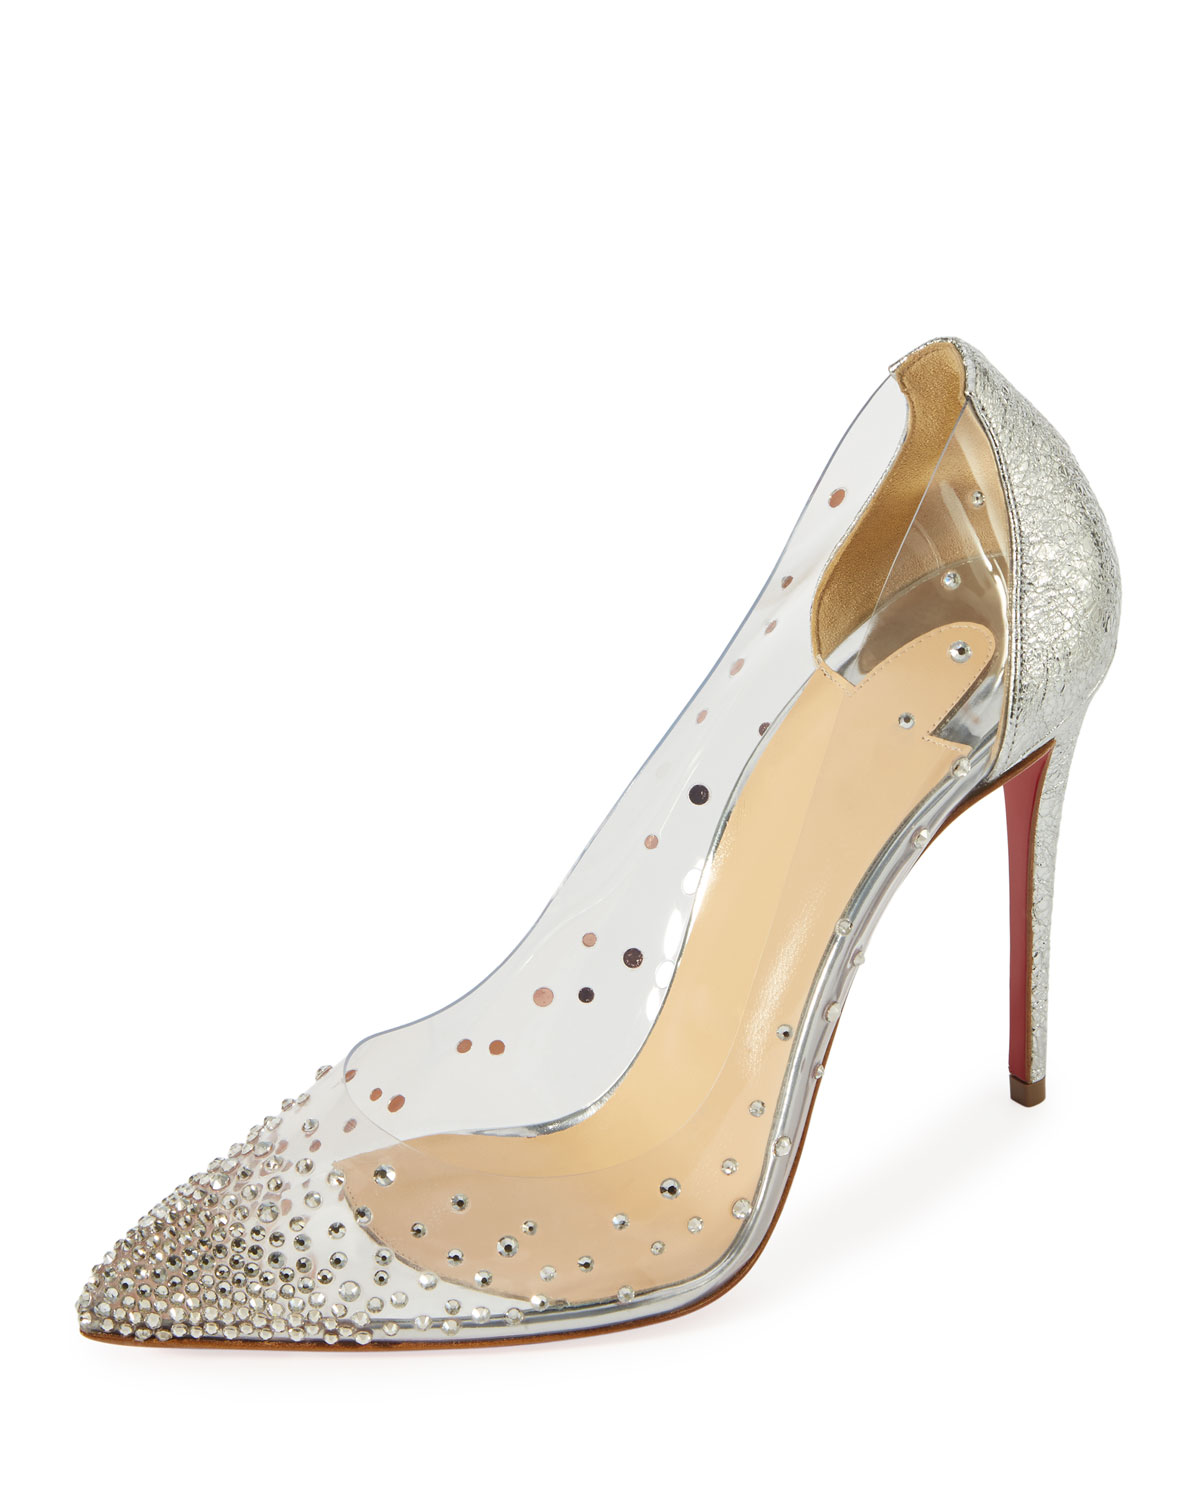 6c6230a1cbd7 Christian Louboutin Degrastrass Vinyl 100mm Red Sole Pump